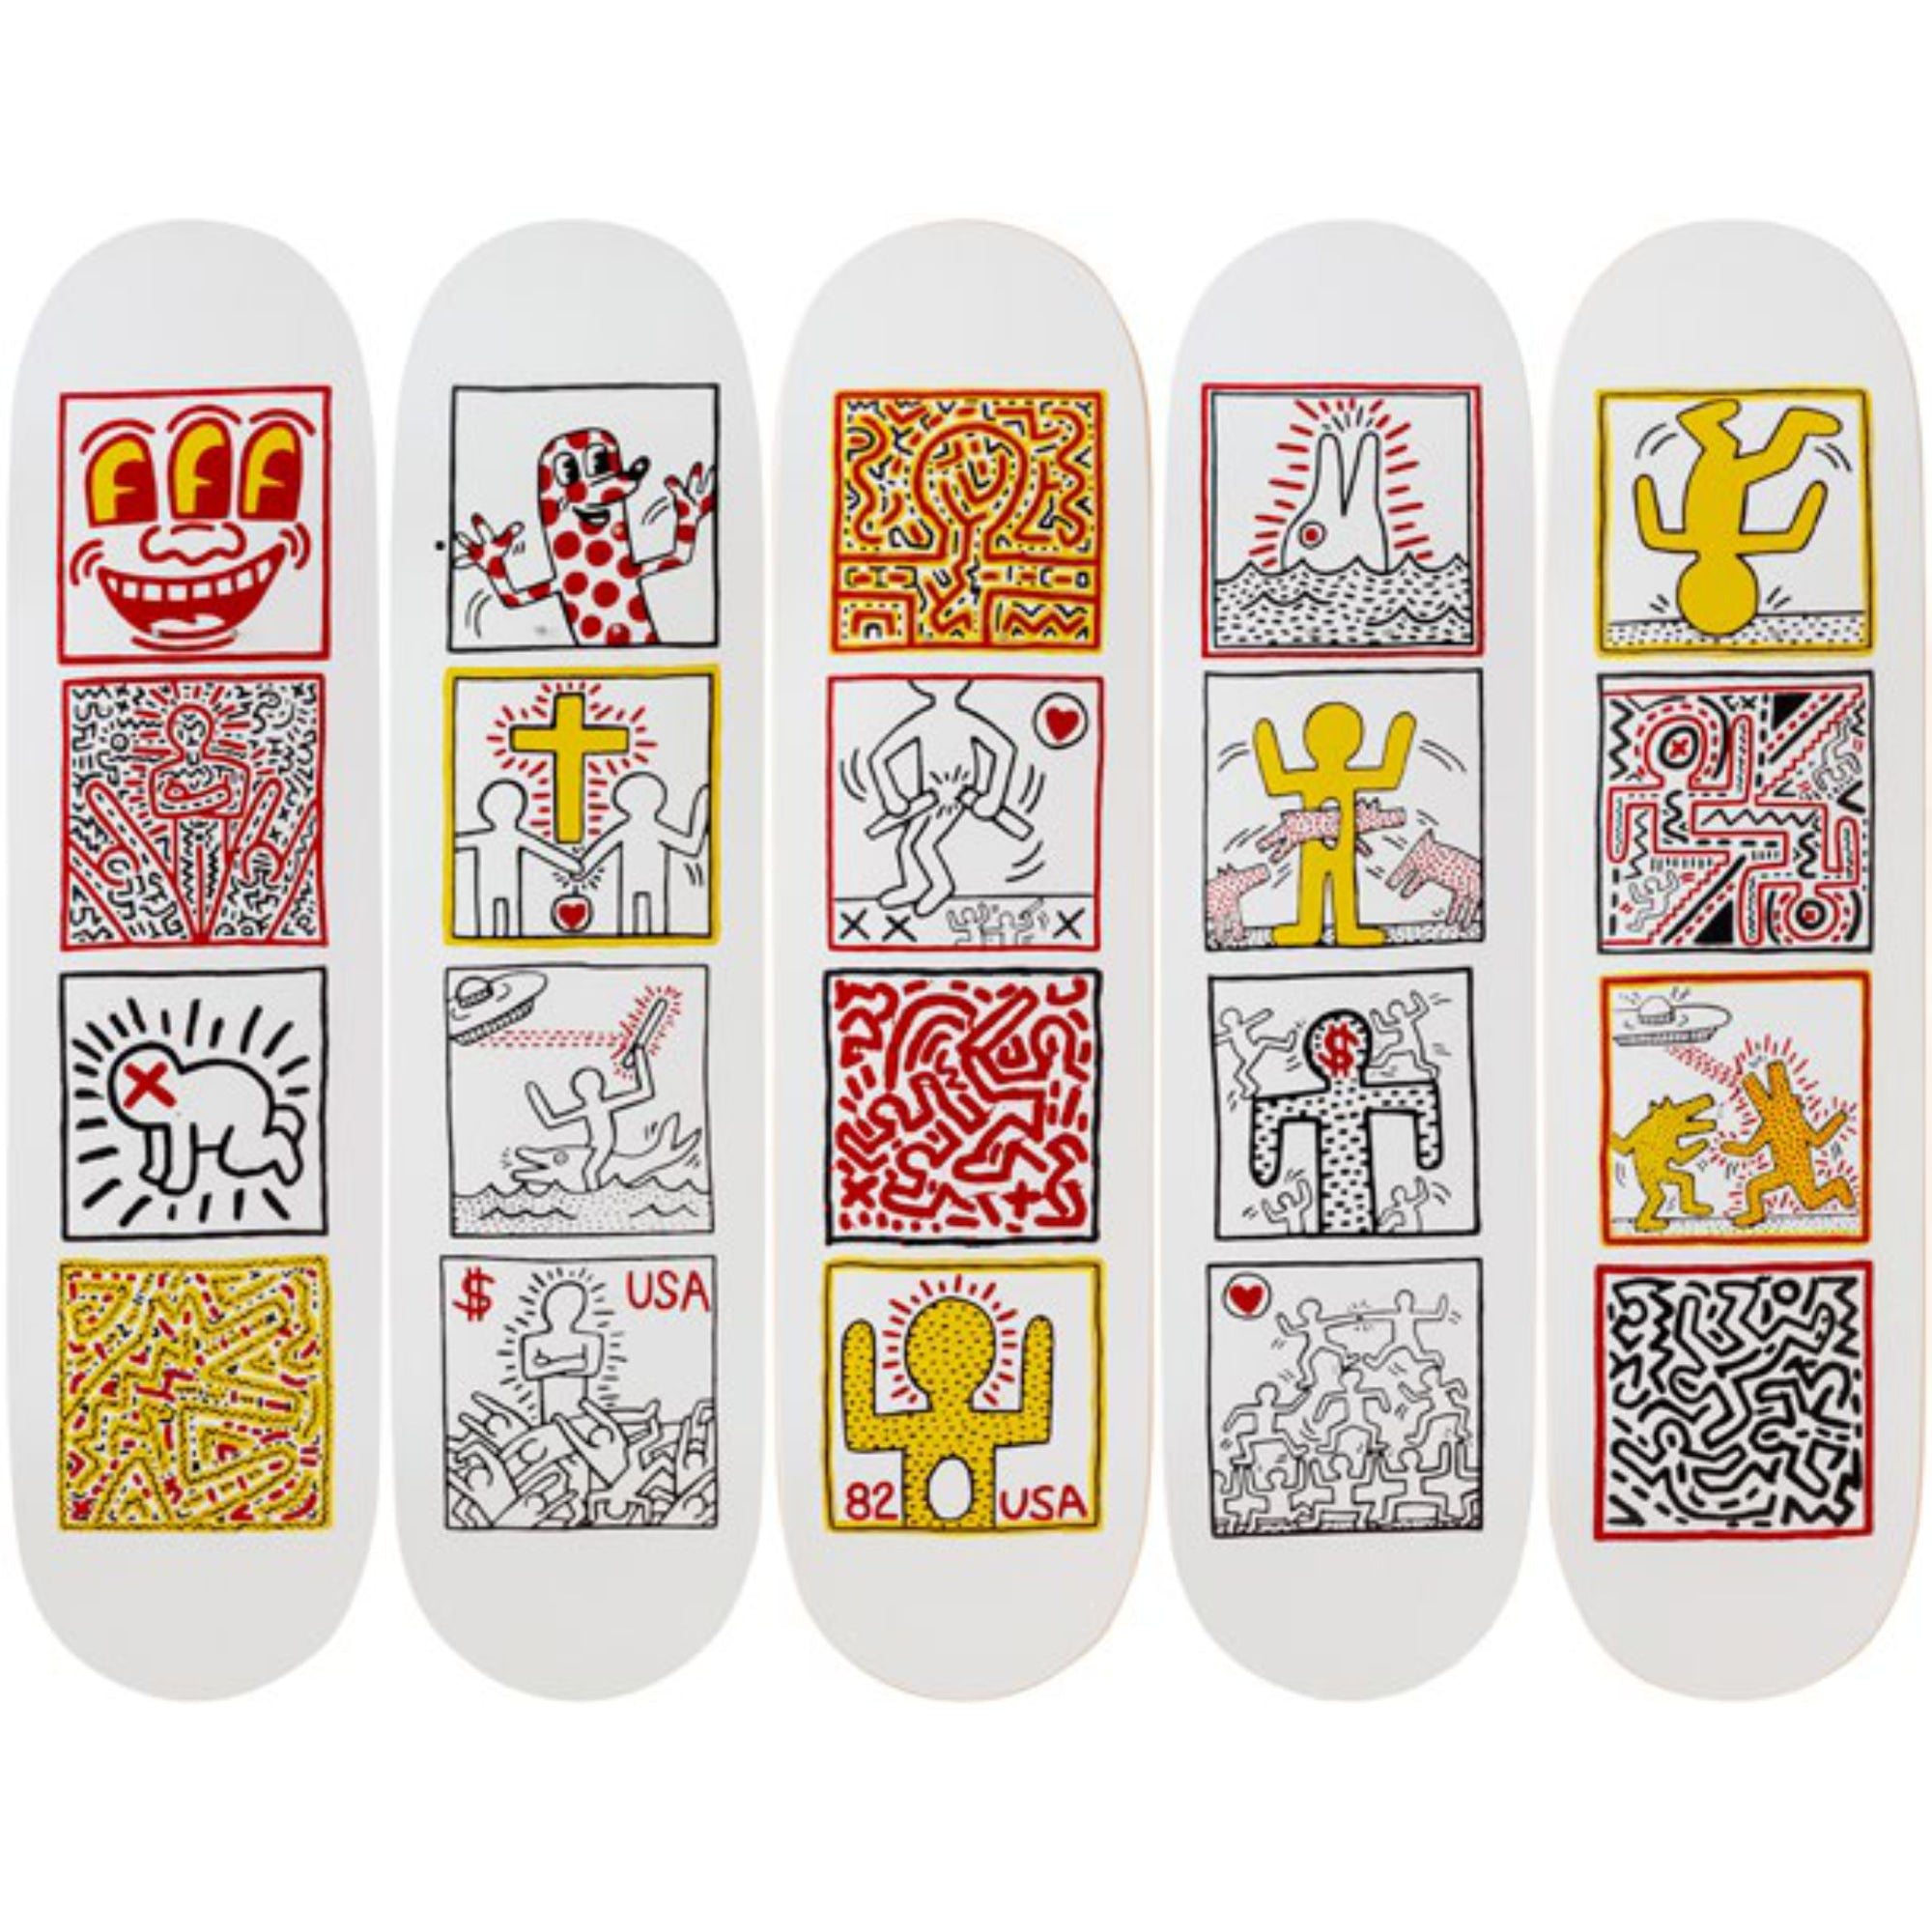 The Skateroom skateboard, Keith Haring One Man Show